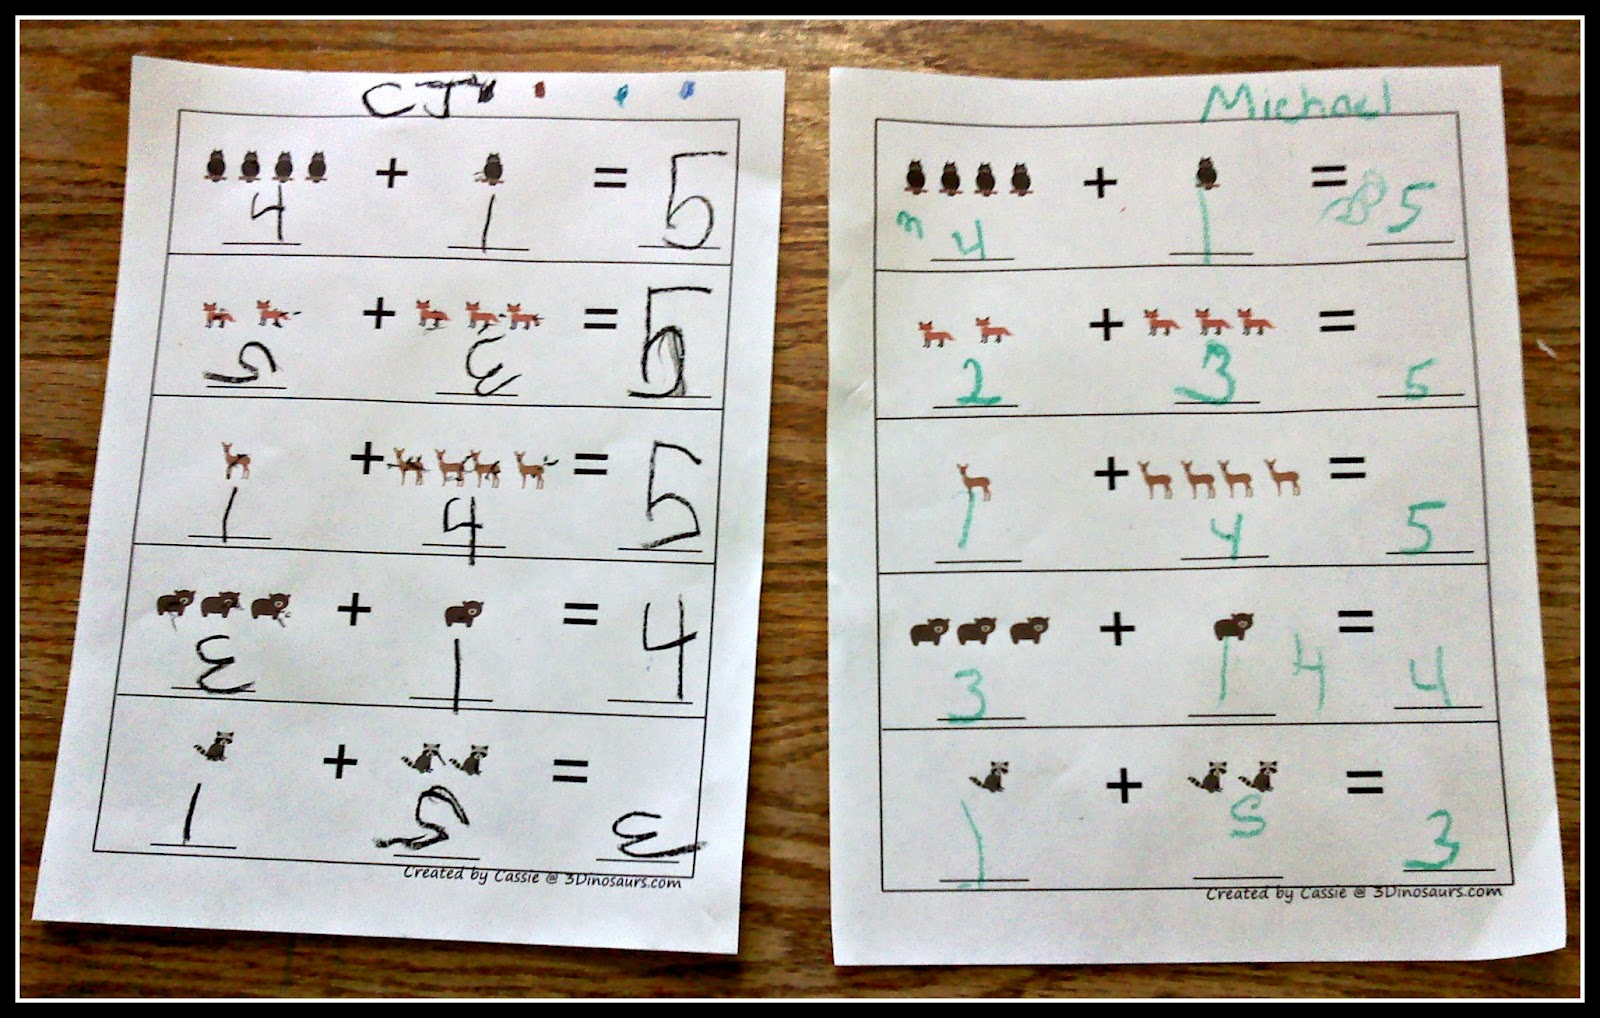 Simple Machines Worksheet For Kids And simple addition worksheets